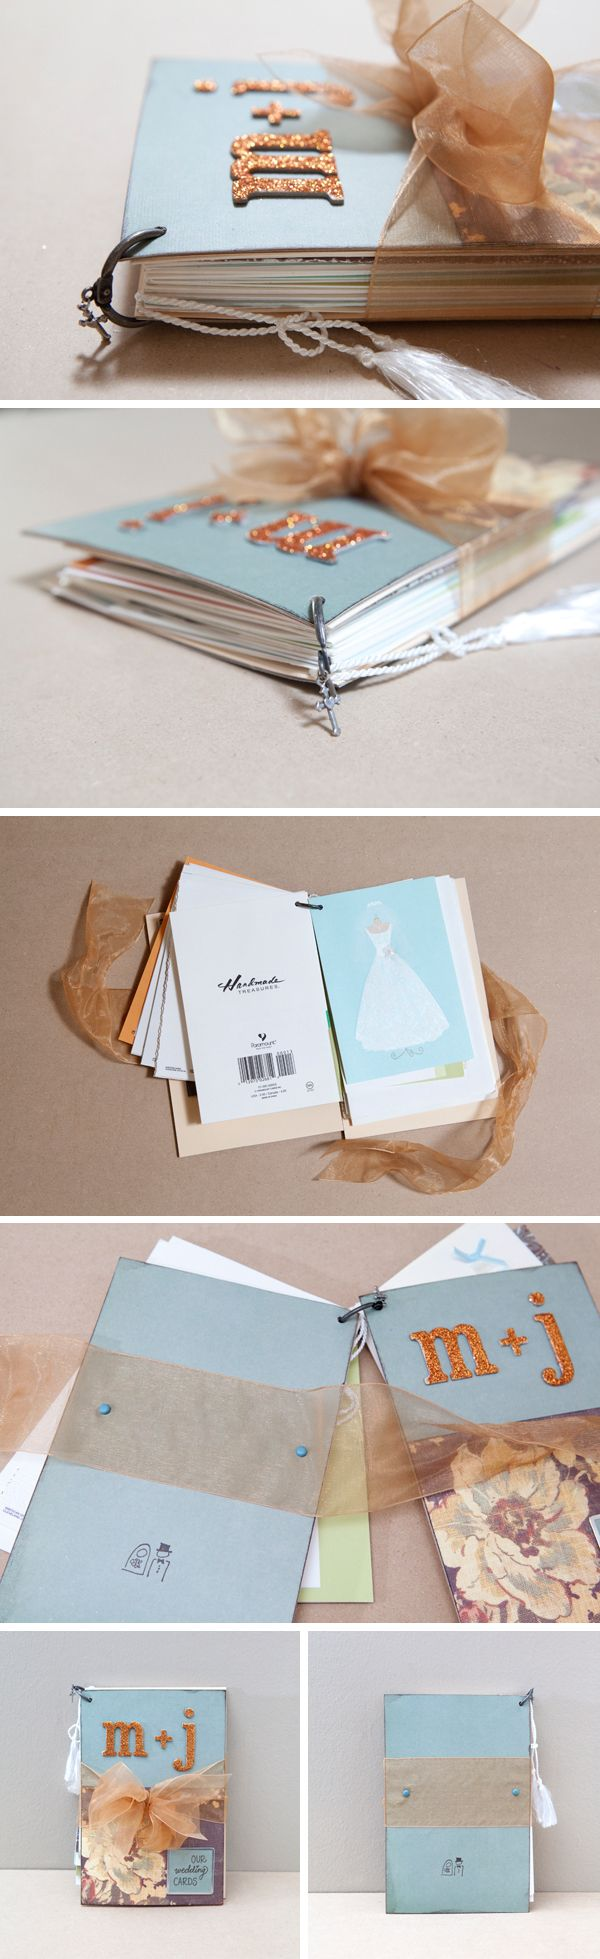 A book with all of the wedding cards.